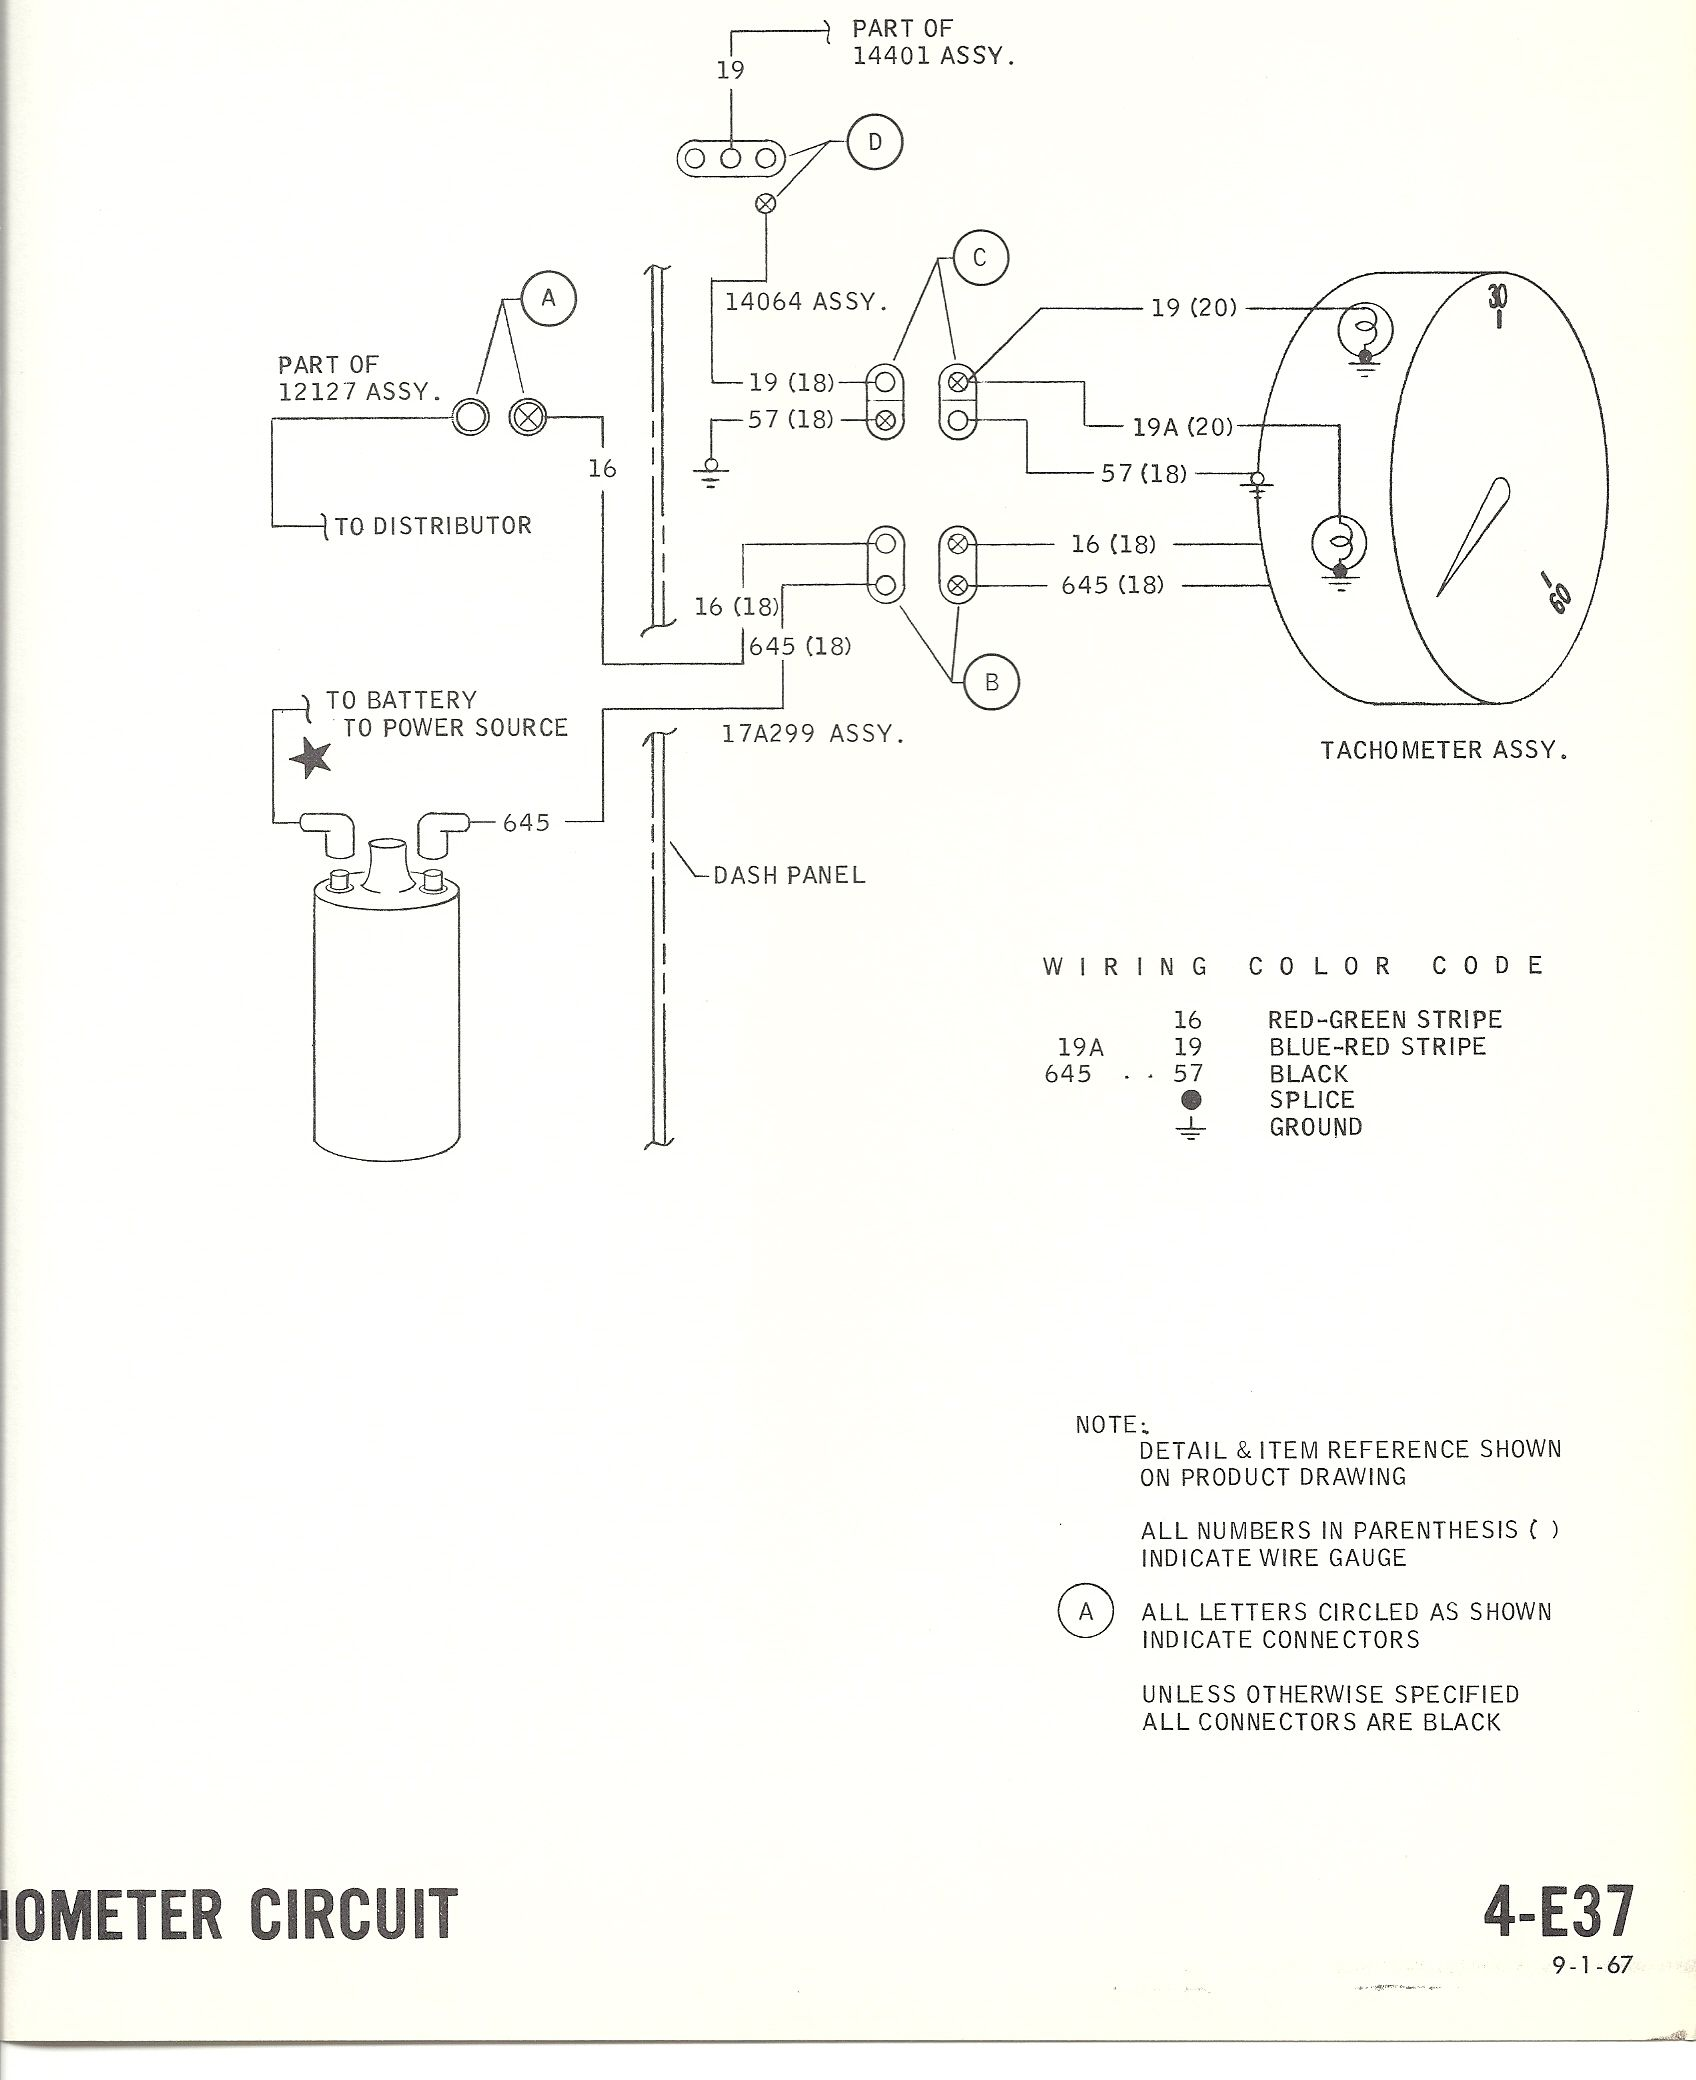 2b2f8e488a4c6a6b870c00f5af30de6c 1967 mustang wiring to tachometer mustang tachometer Ford Alternator Wiring Diagram at panicattacktreatment.co